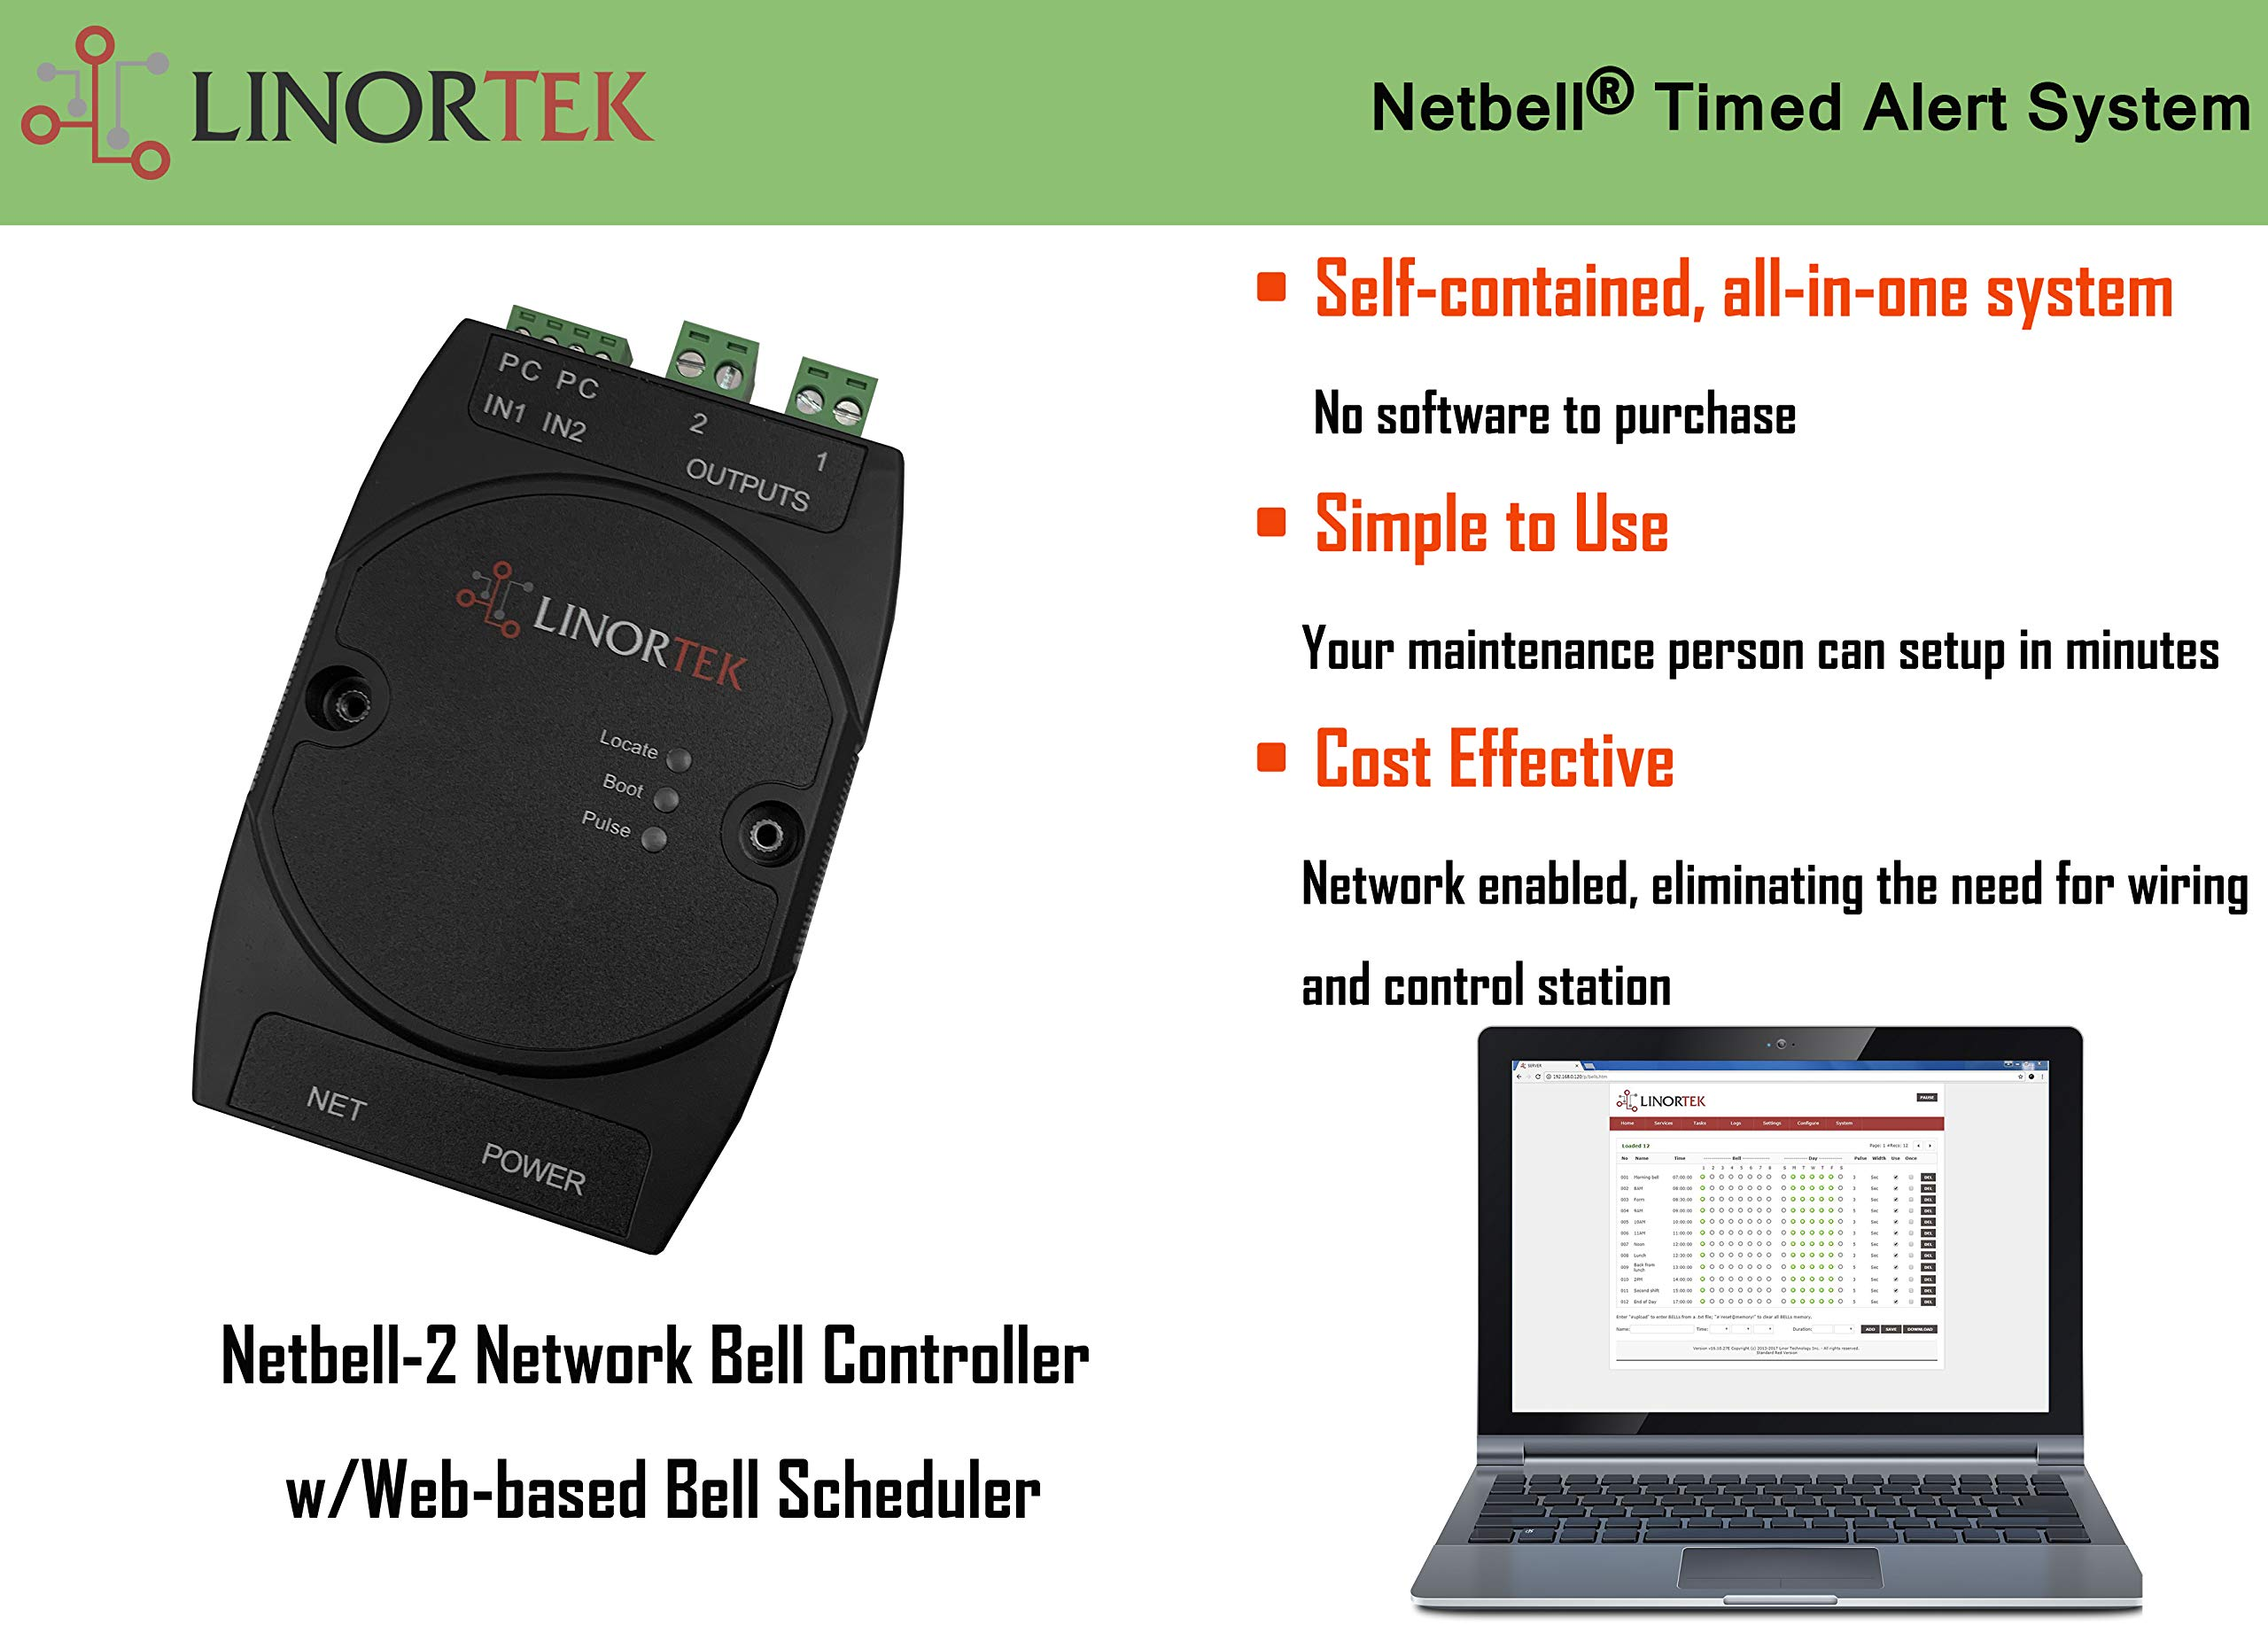 Linortek Netbell-2 TCP/IP Ethernet 2 Zone Bell Ringer Web-Based Bell Controller for 110V 10A Alarm Signal Bell/Horn/Buzzer and Other Timed Equipment POE